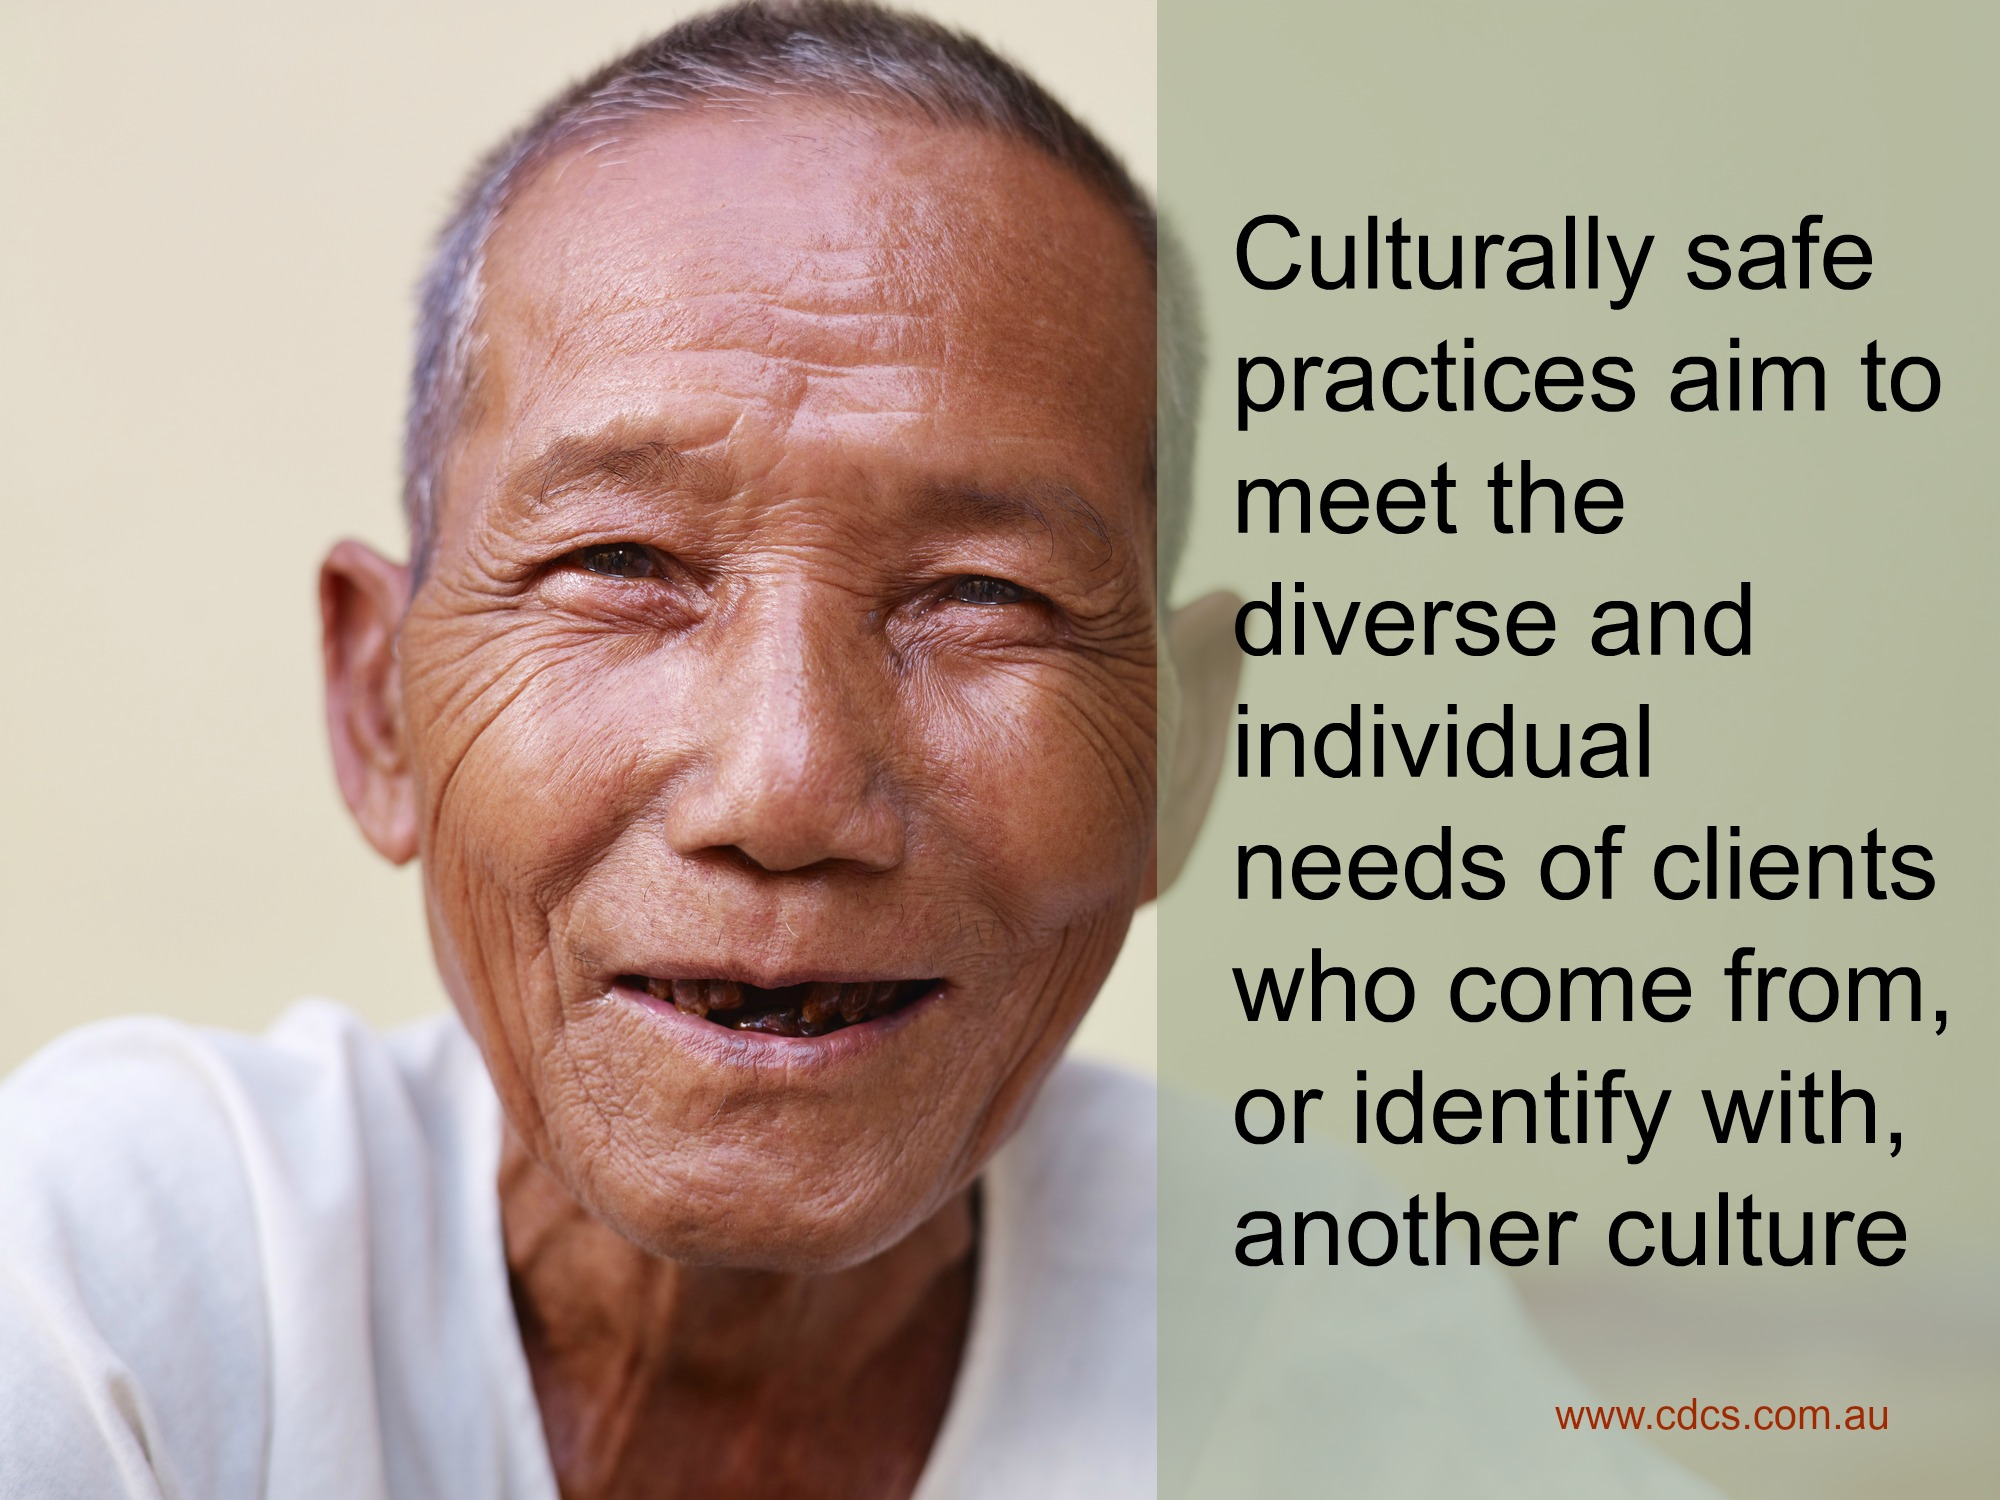 culturally safe practices aim to meet the diverse and individualised needs of clients who come from, or identify with, another culture